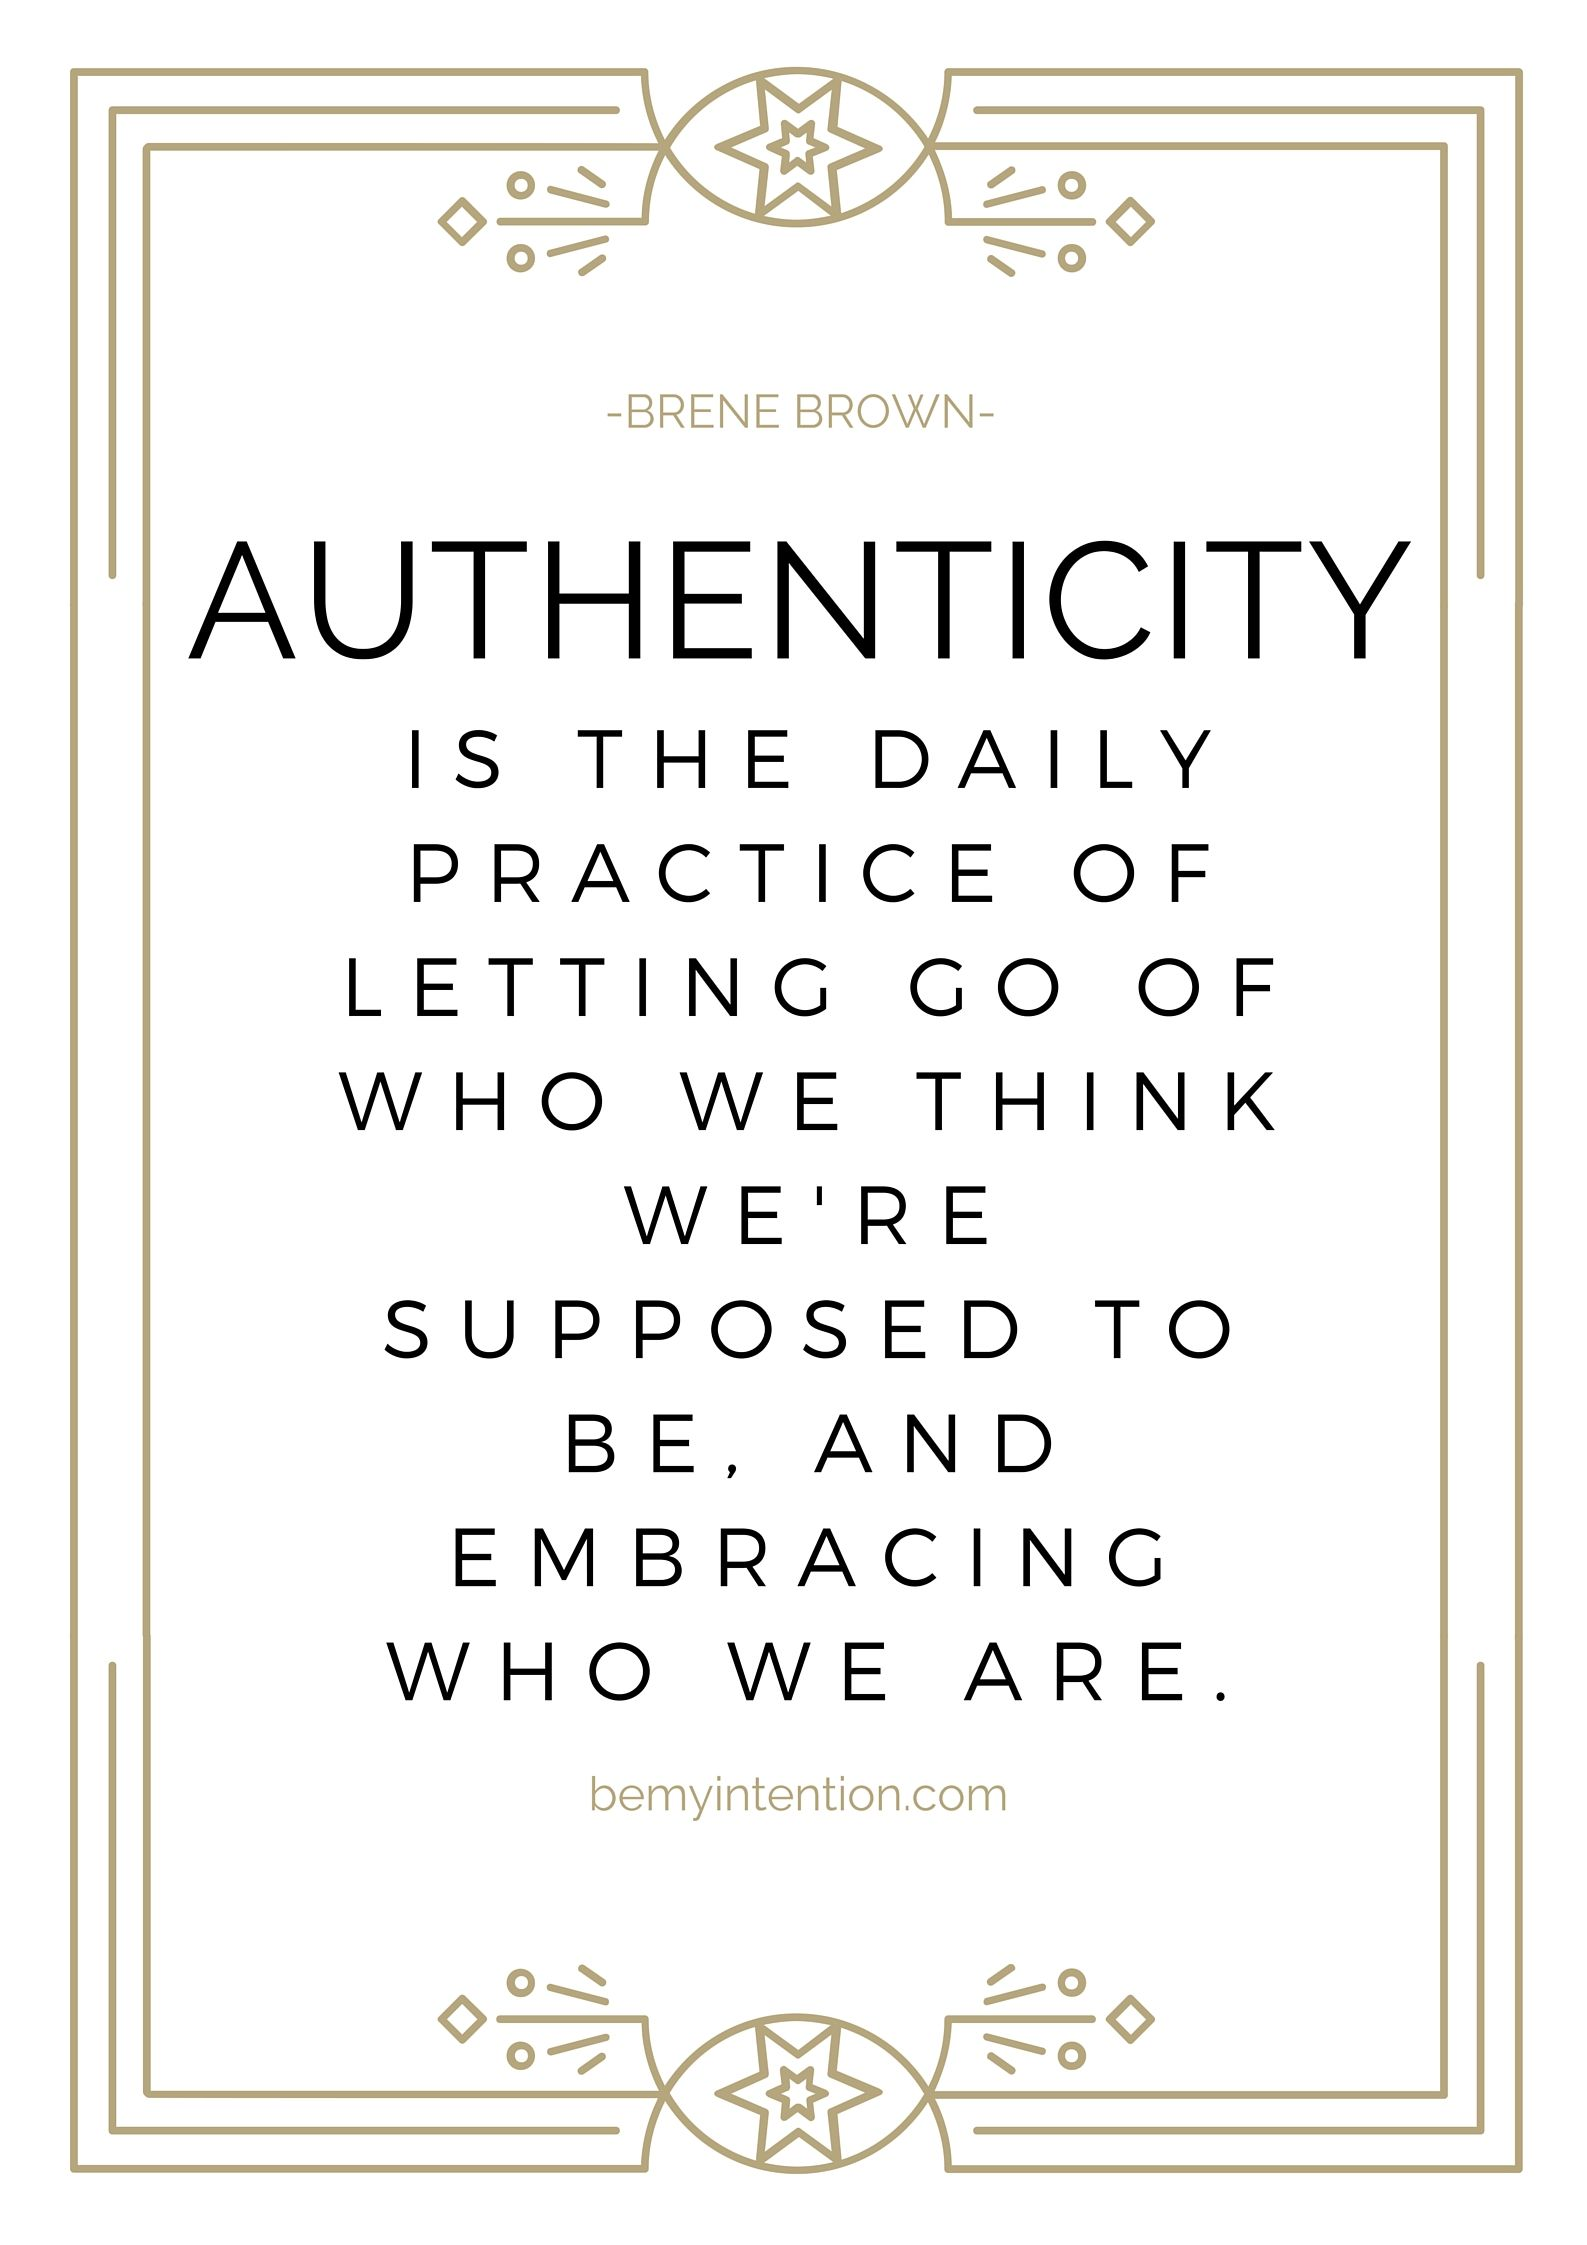 Brene Brown Authenticity Quote New Years Goals